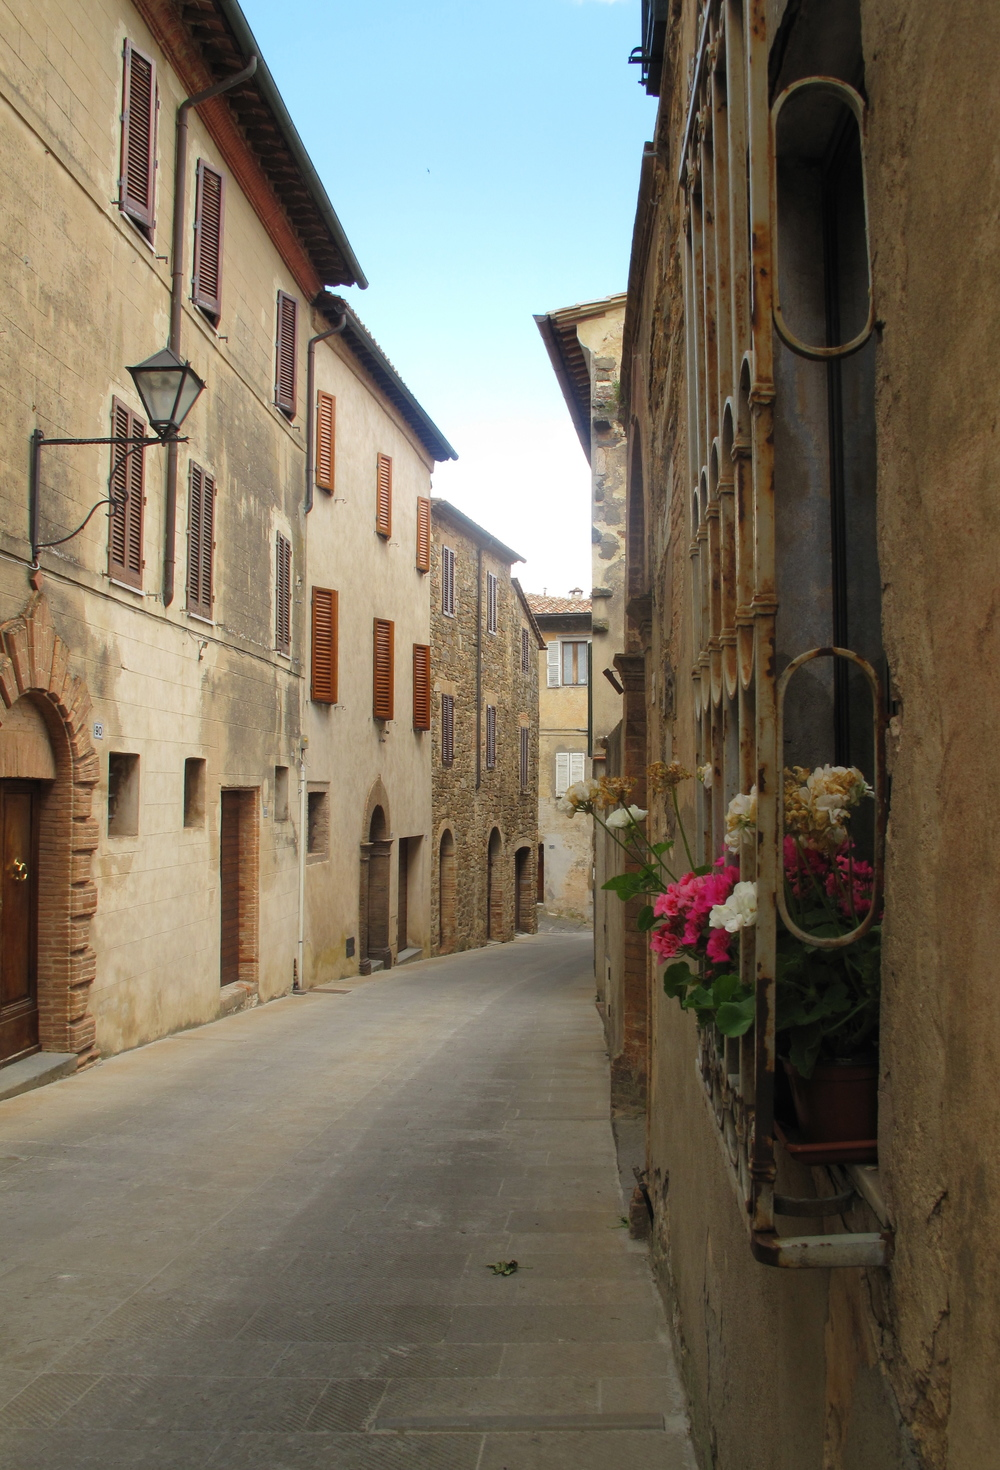 Streets of Montalcino hilltop Tuscan village